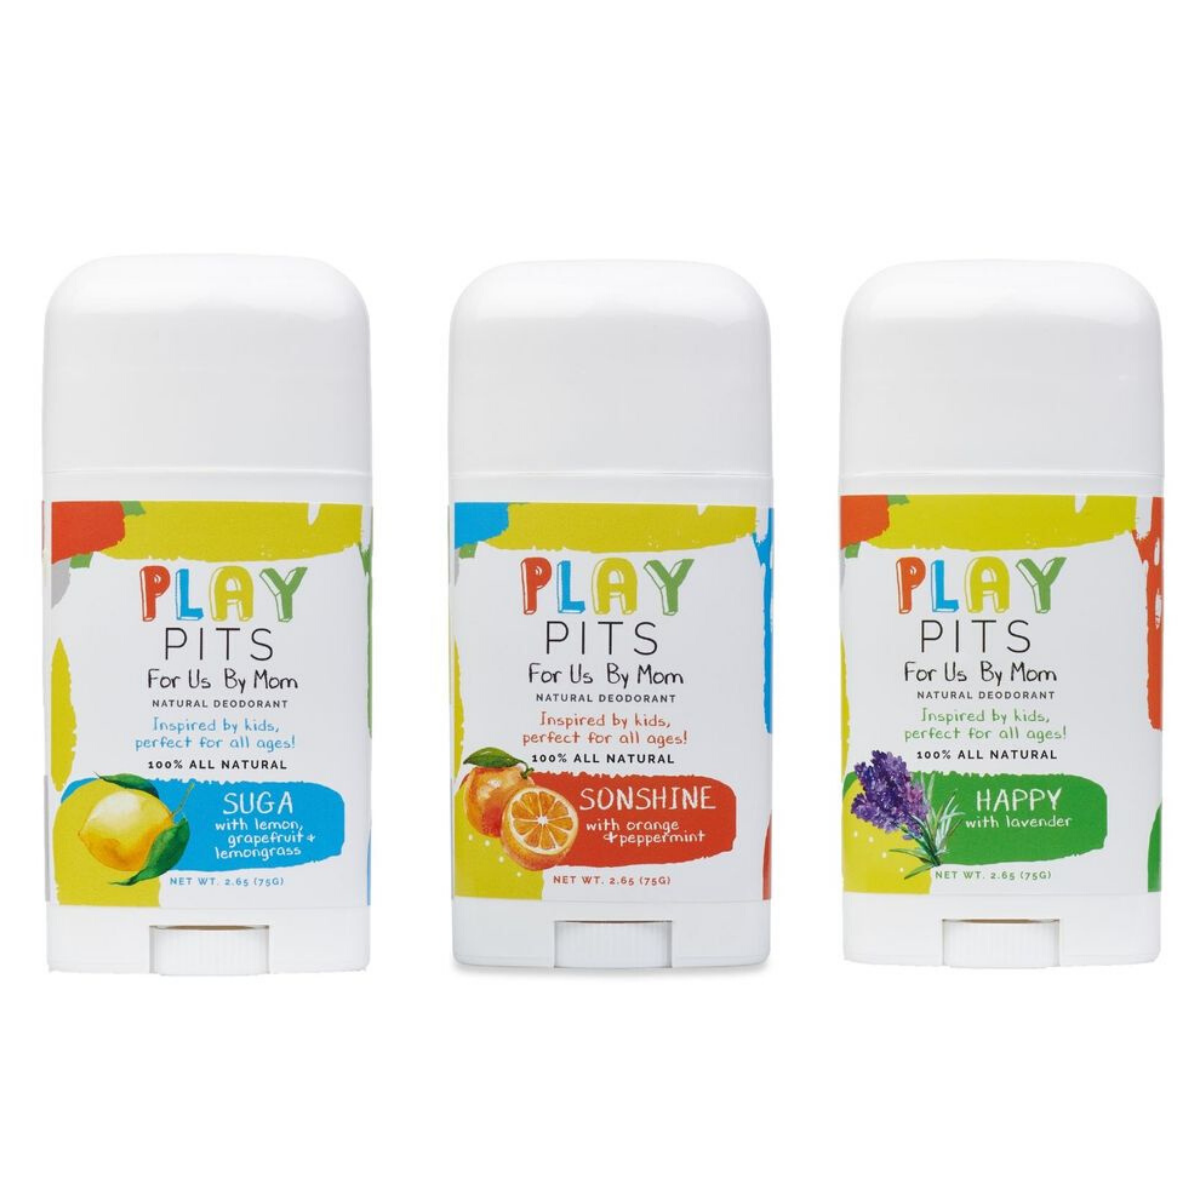 Play Pits Deodorant